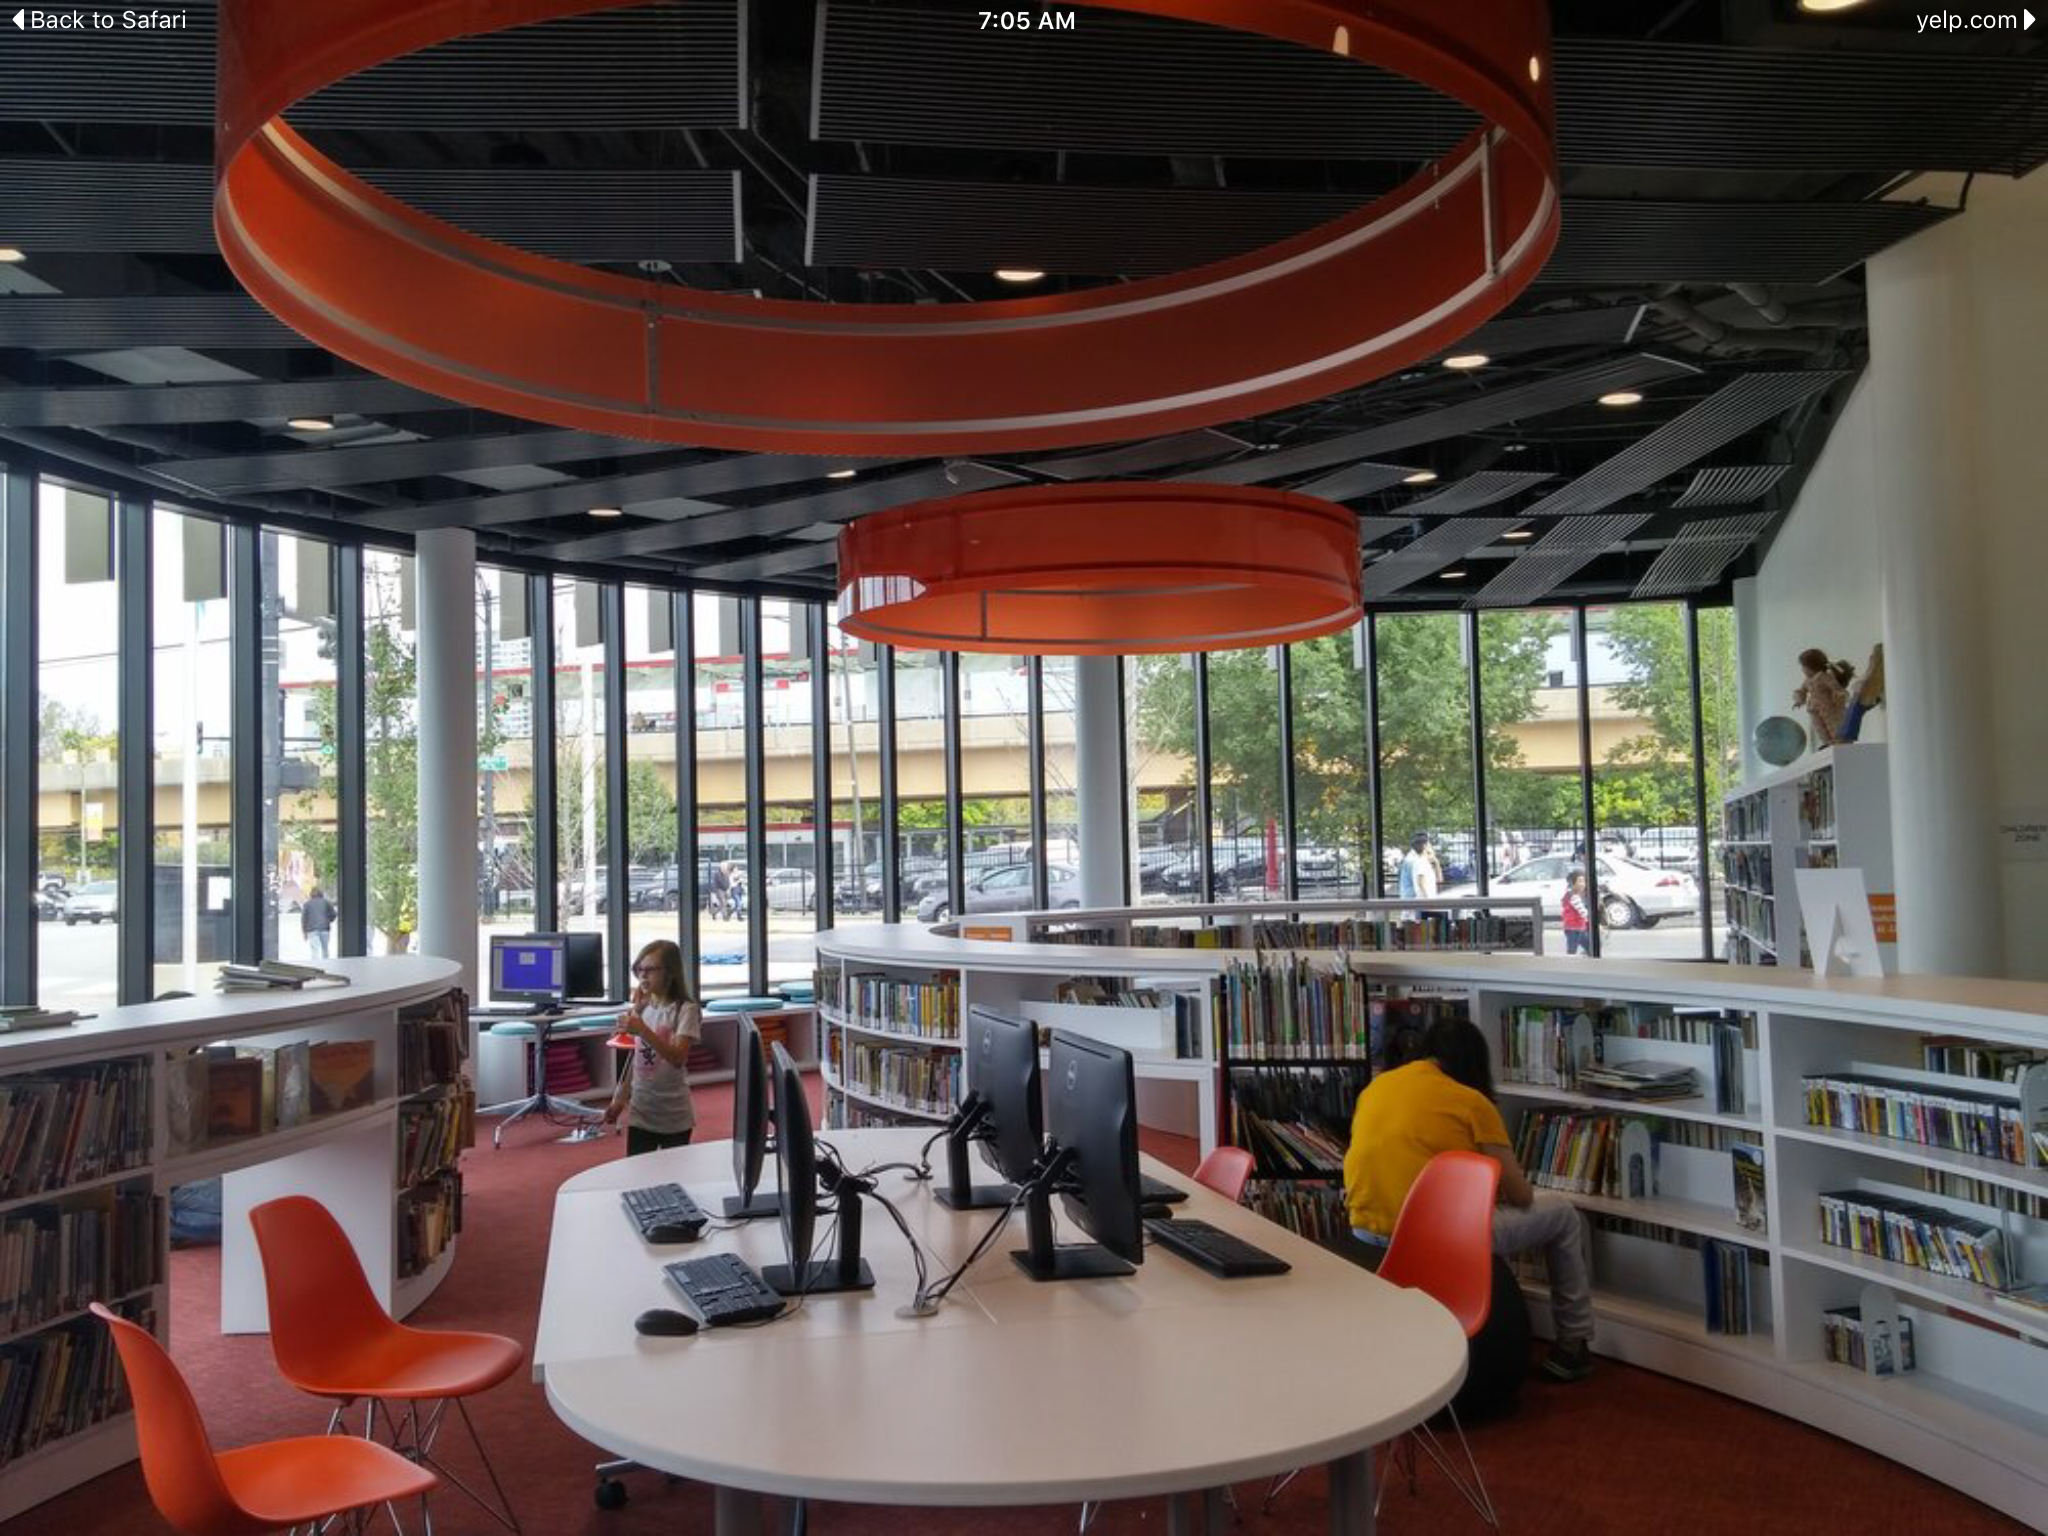 2016 Aia Ala Library Building Awards Chicago Public Library Chinatown Branch Library Computer Area By Som Architecture Leed Gold Library Wight Co Ch